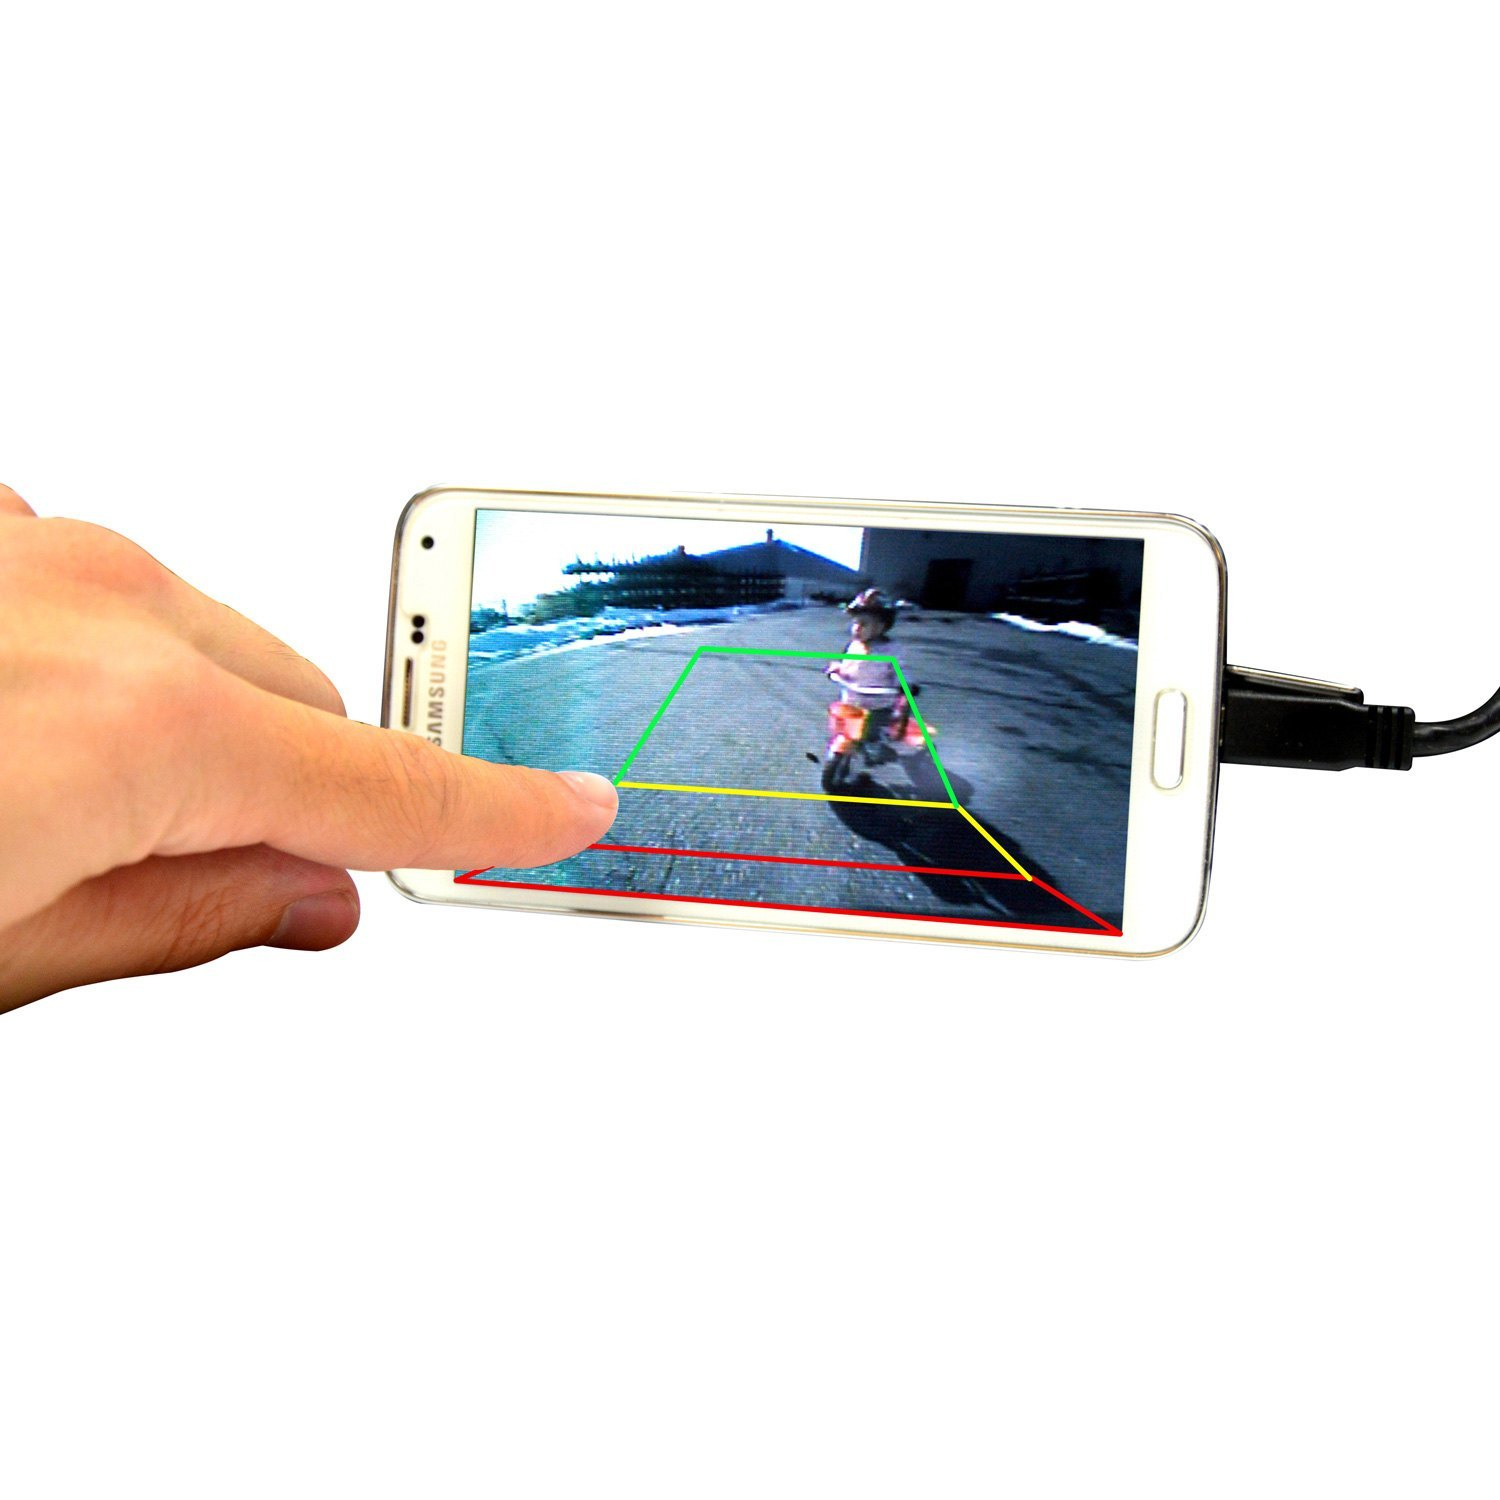 Brandmotion® 9002-2800 - Rear View Camera Interface for Android™ Smartphone